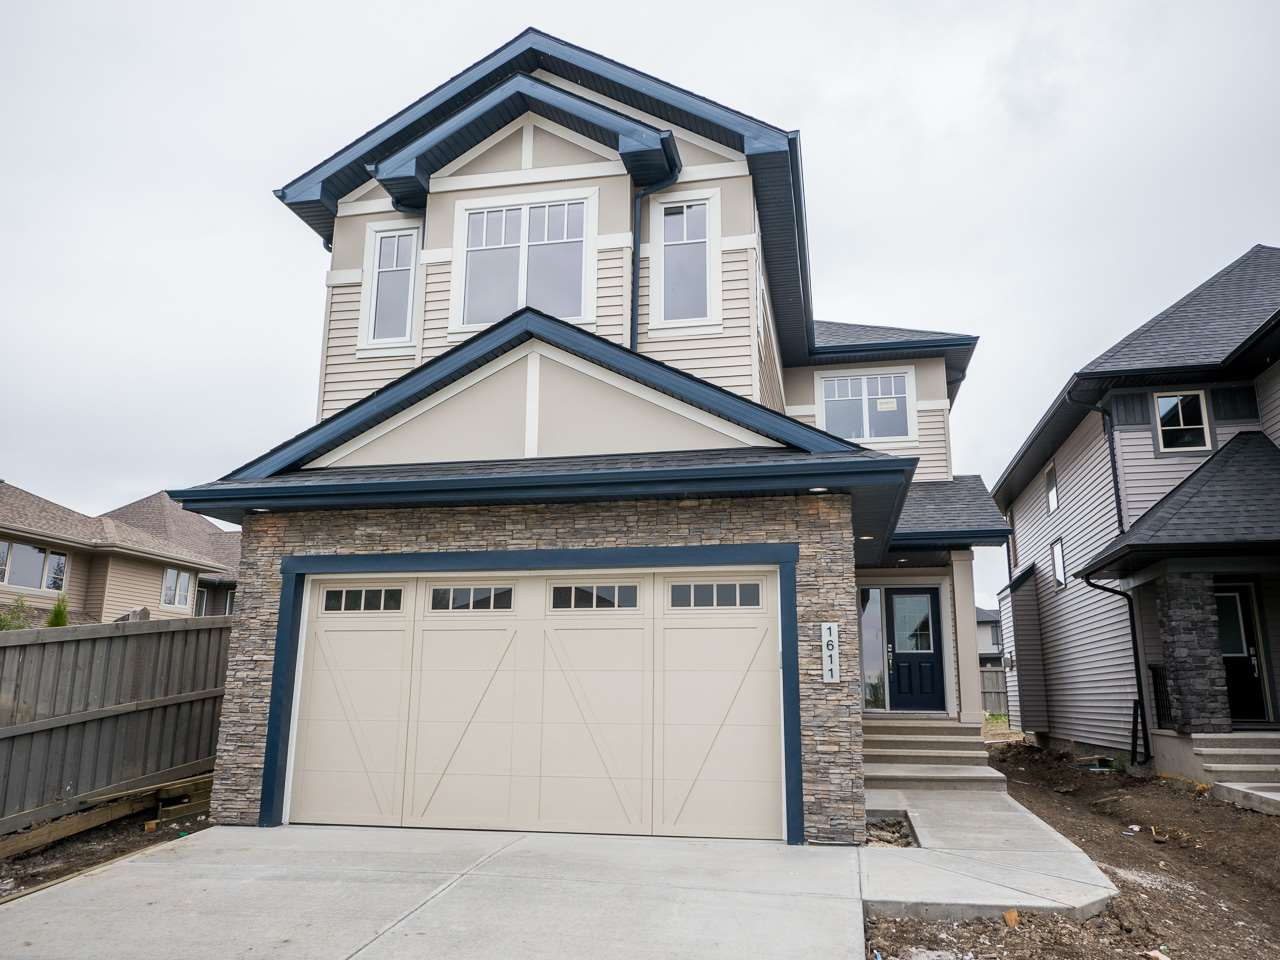 Brand new 1966 SQFT 2-Storey located in Ambleside. Perfectly located home is walking distance to Windermere Mall and bus stop. Only one block from playground. Beautiful house comes with high ceiling at the main entrance. Main floor with living room, kitchen, dinning and half bath. Custom Kitchen has with walk-through pantry. Glossy kitchen with Quartz counter tops. Set of stainless steel appliances with gas cooktop. Upgraded finishing with maple railing. Flooring comes with 12x24 tiles, Engineered hardwood and carpet. Upgraded plumbing fixtures. Huge size lot. 9ft basement. Rear deck with vinyl flooring and metal railing. Builder will finish the front landscaping. Exterior stone work. Much more..